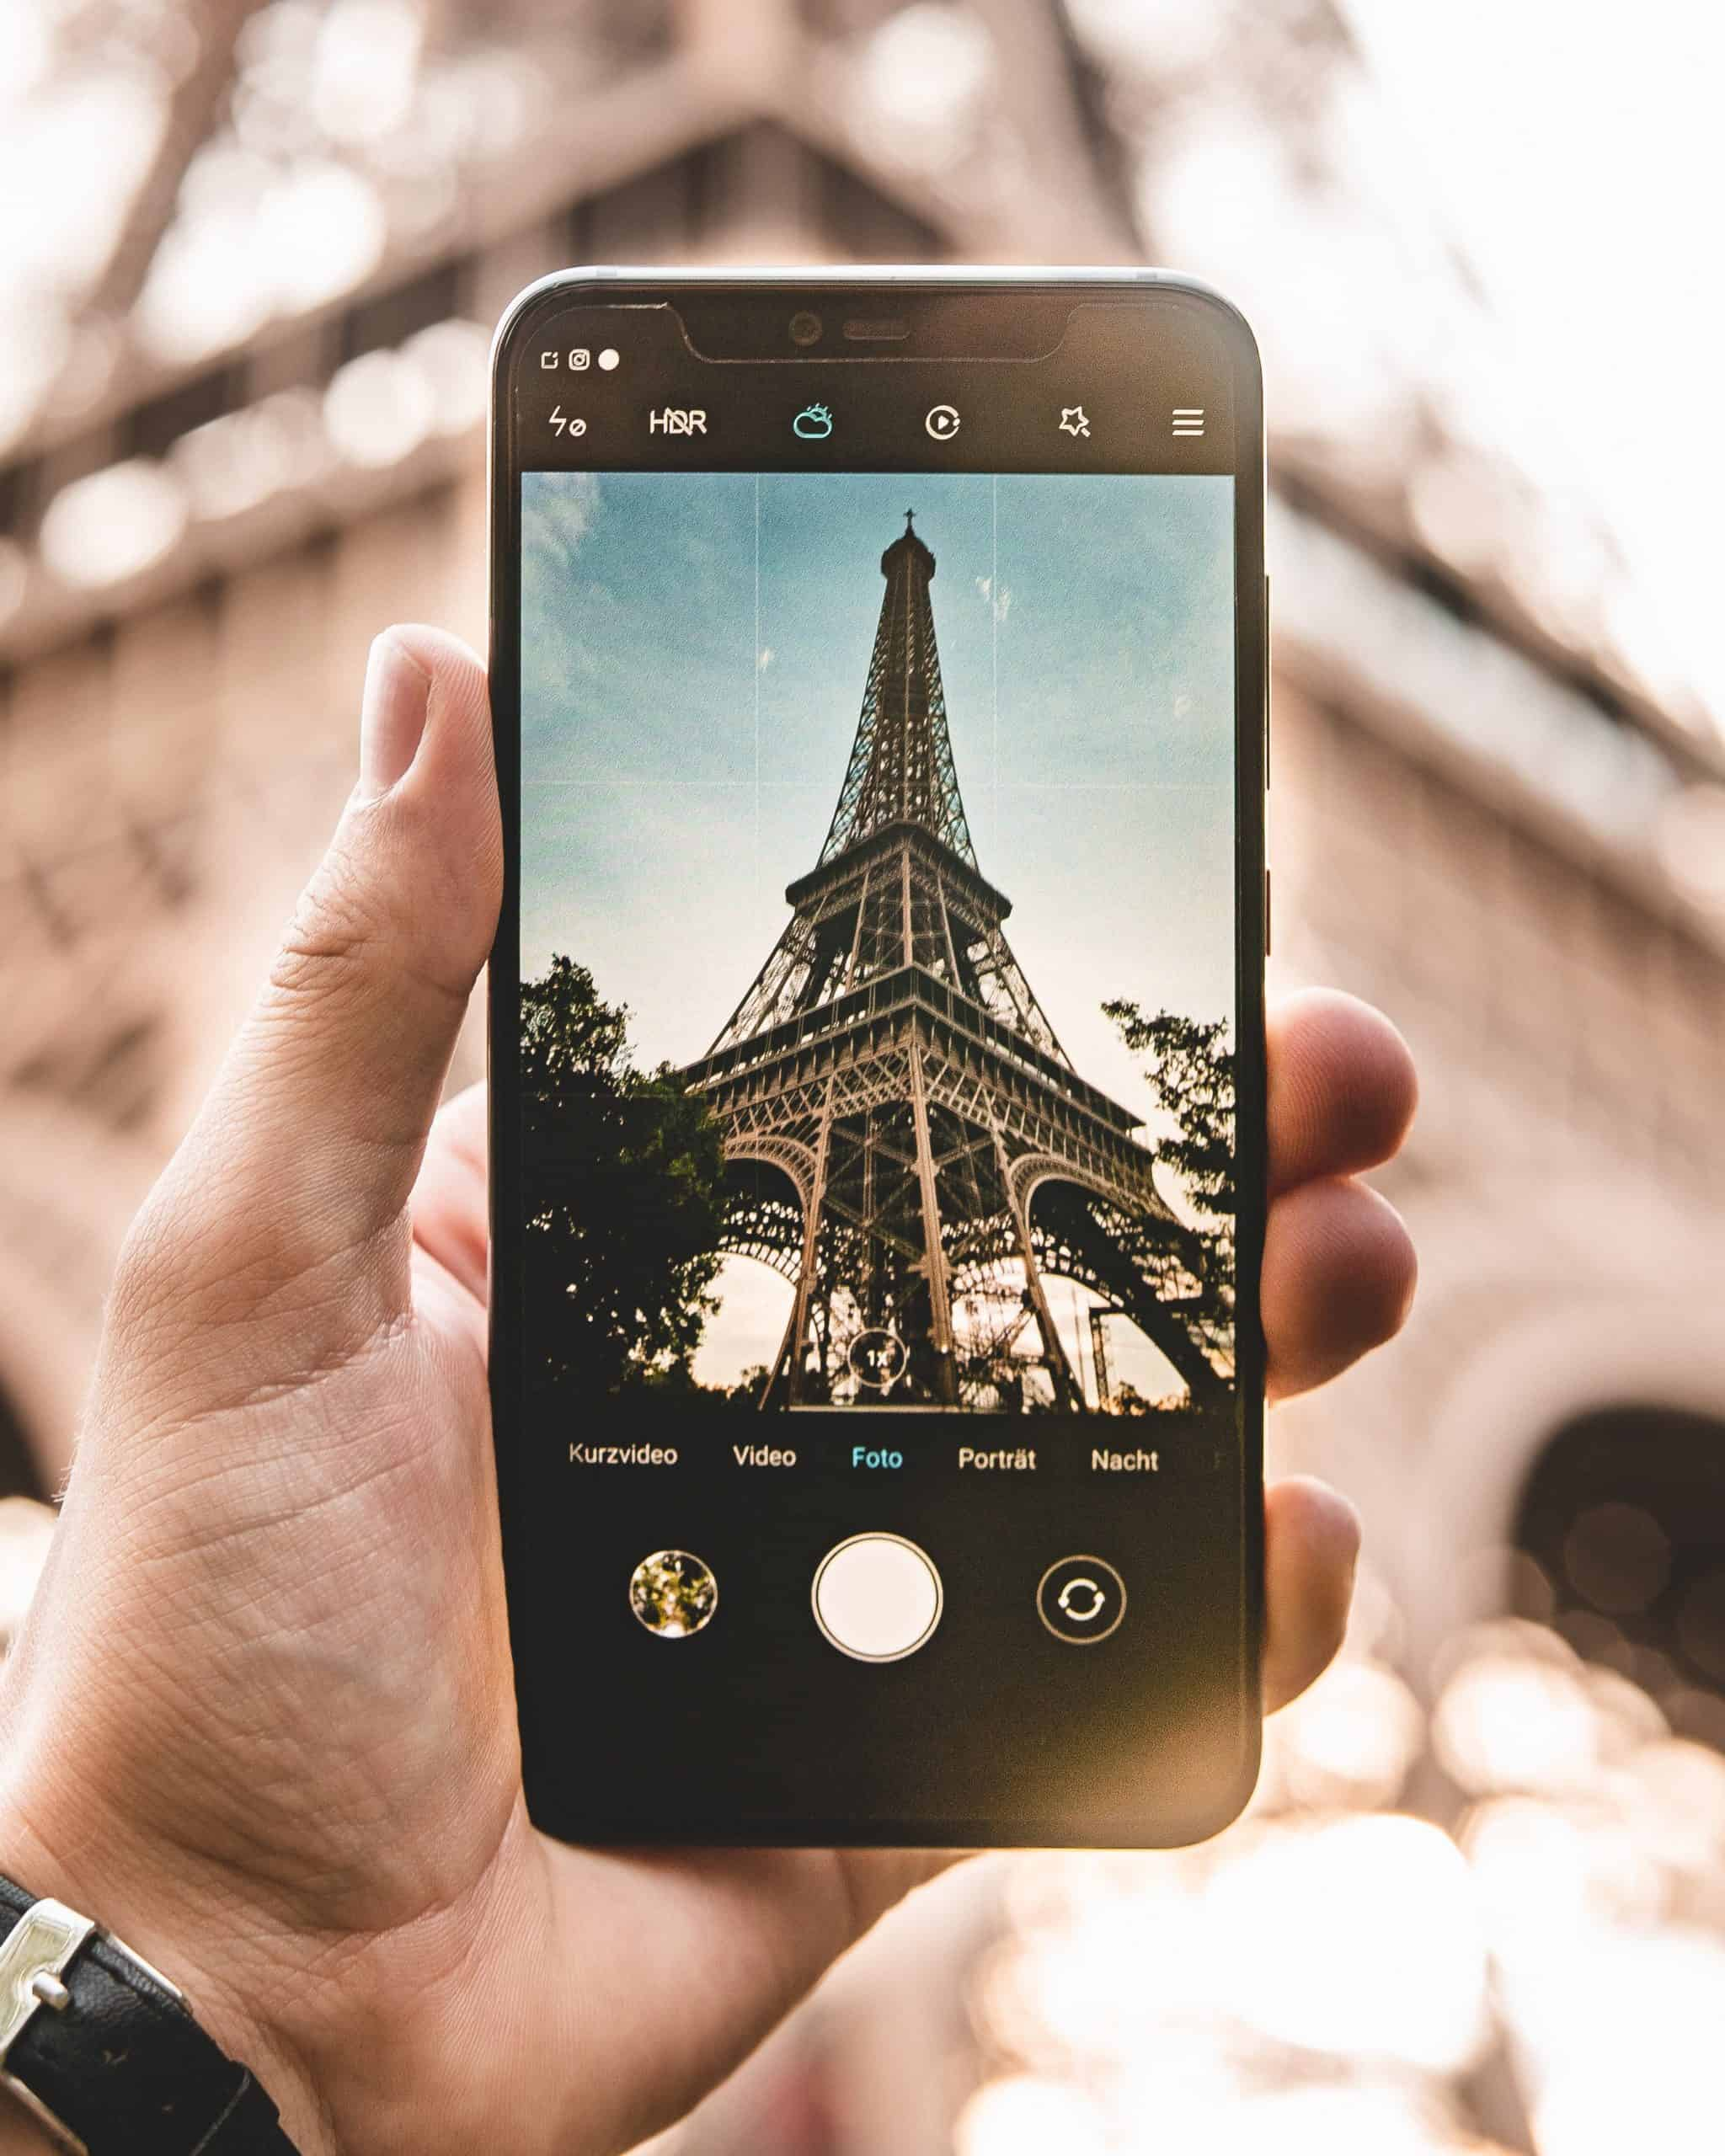 Mobile Photo Submission Tips